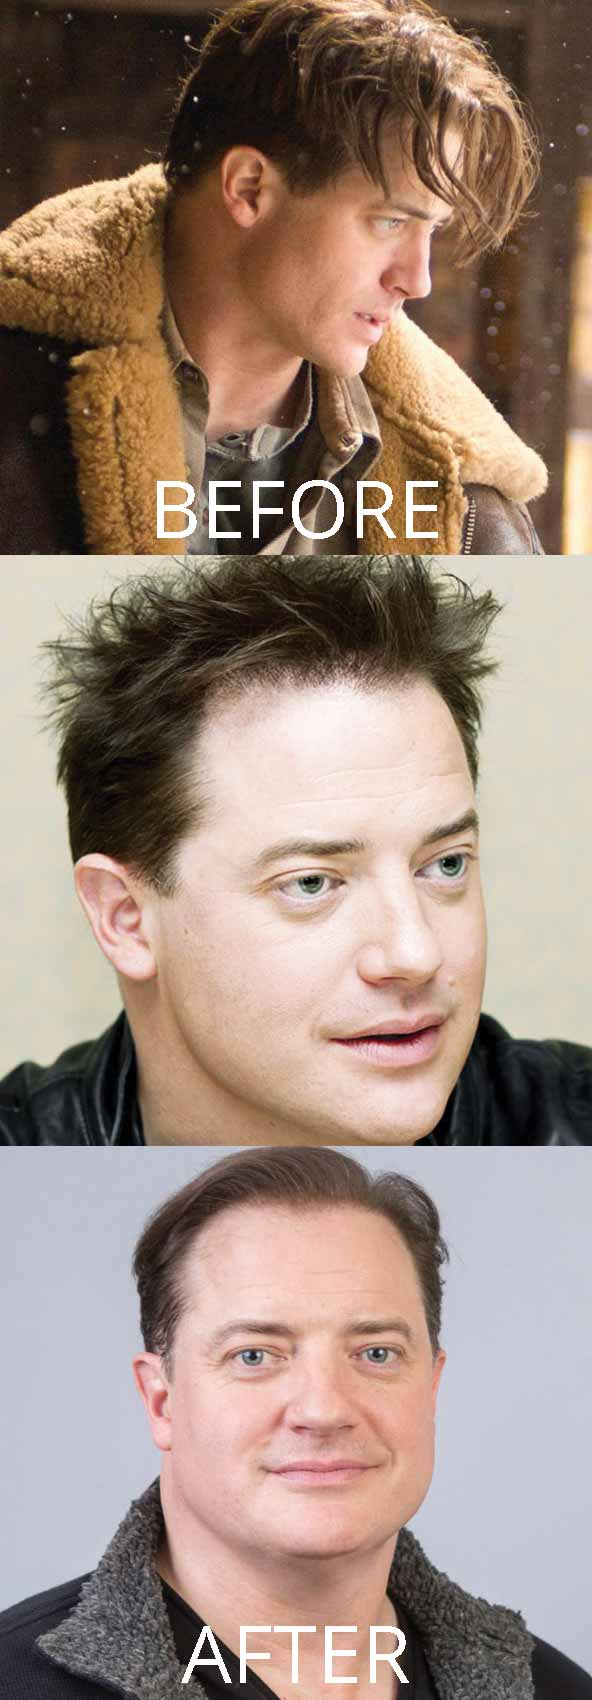 hollywood-celebrity-hair-transplant-loss-(1)-brendan-fraser-mummy-receding-hairline